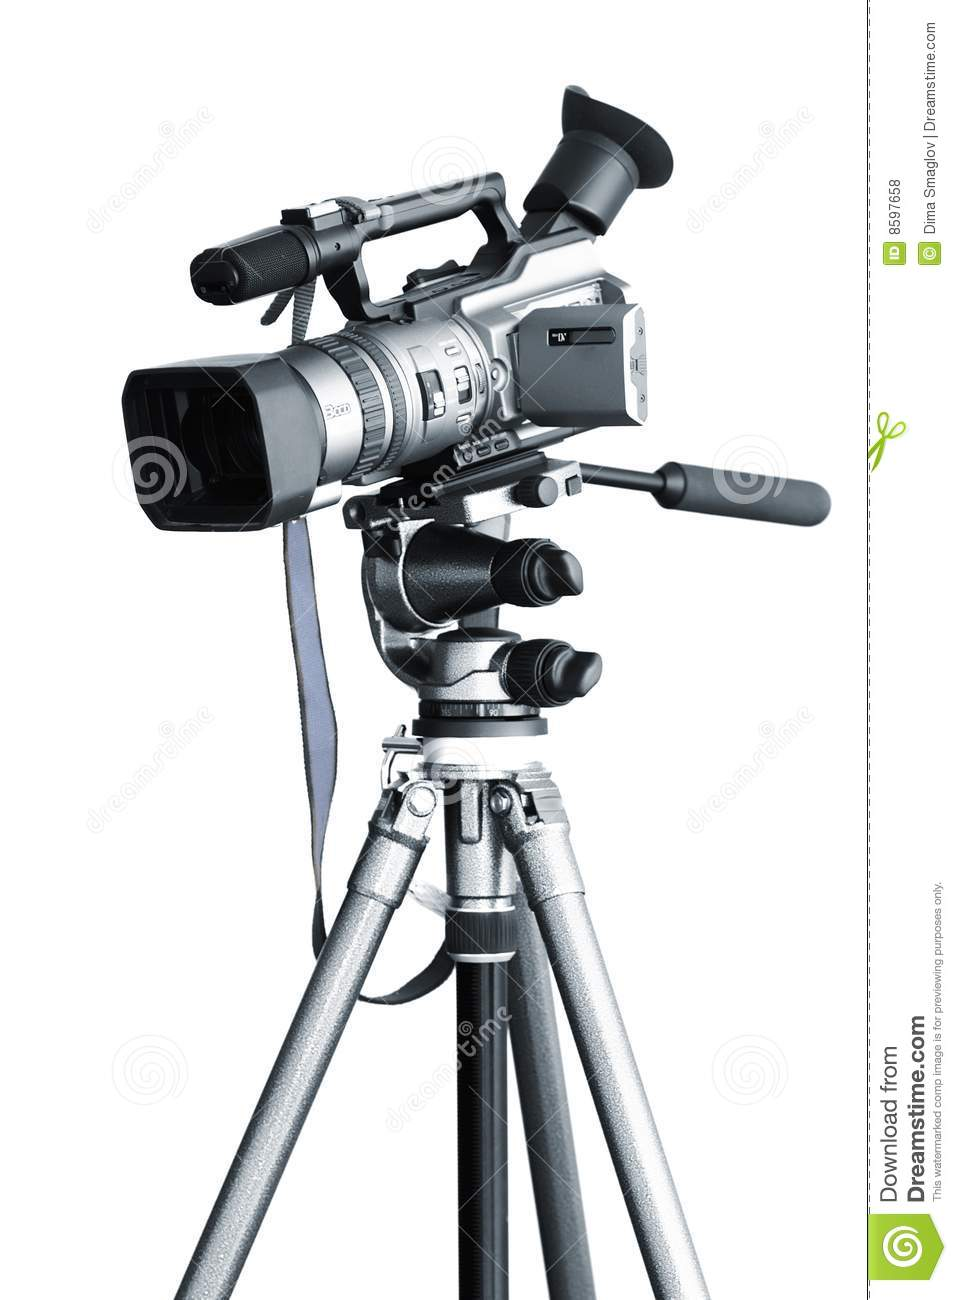 Camcorder on a tripod